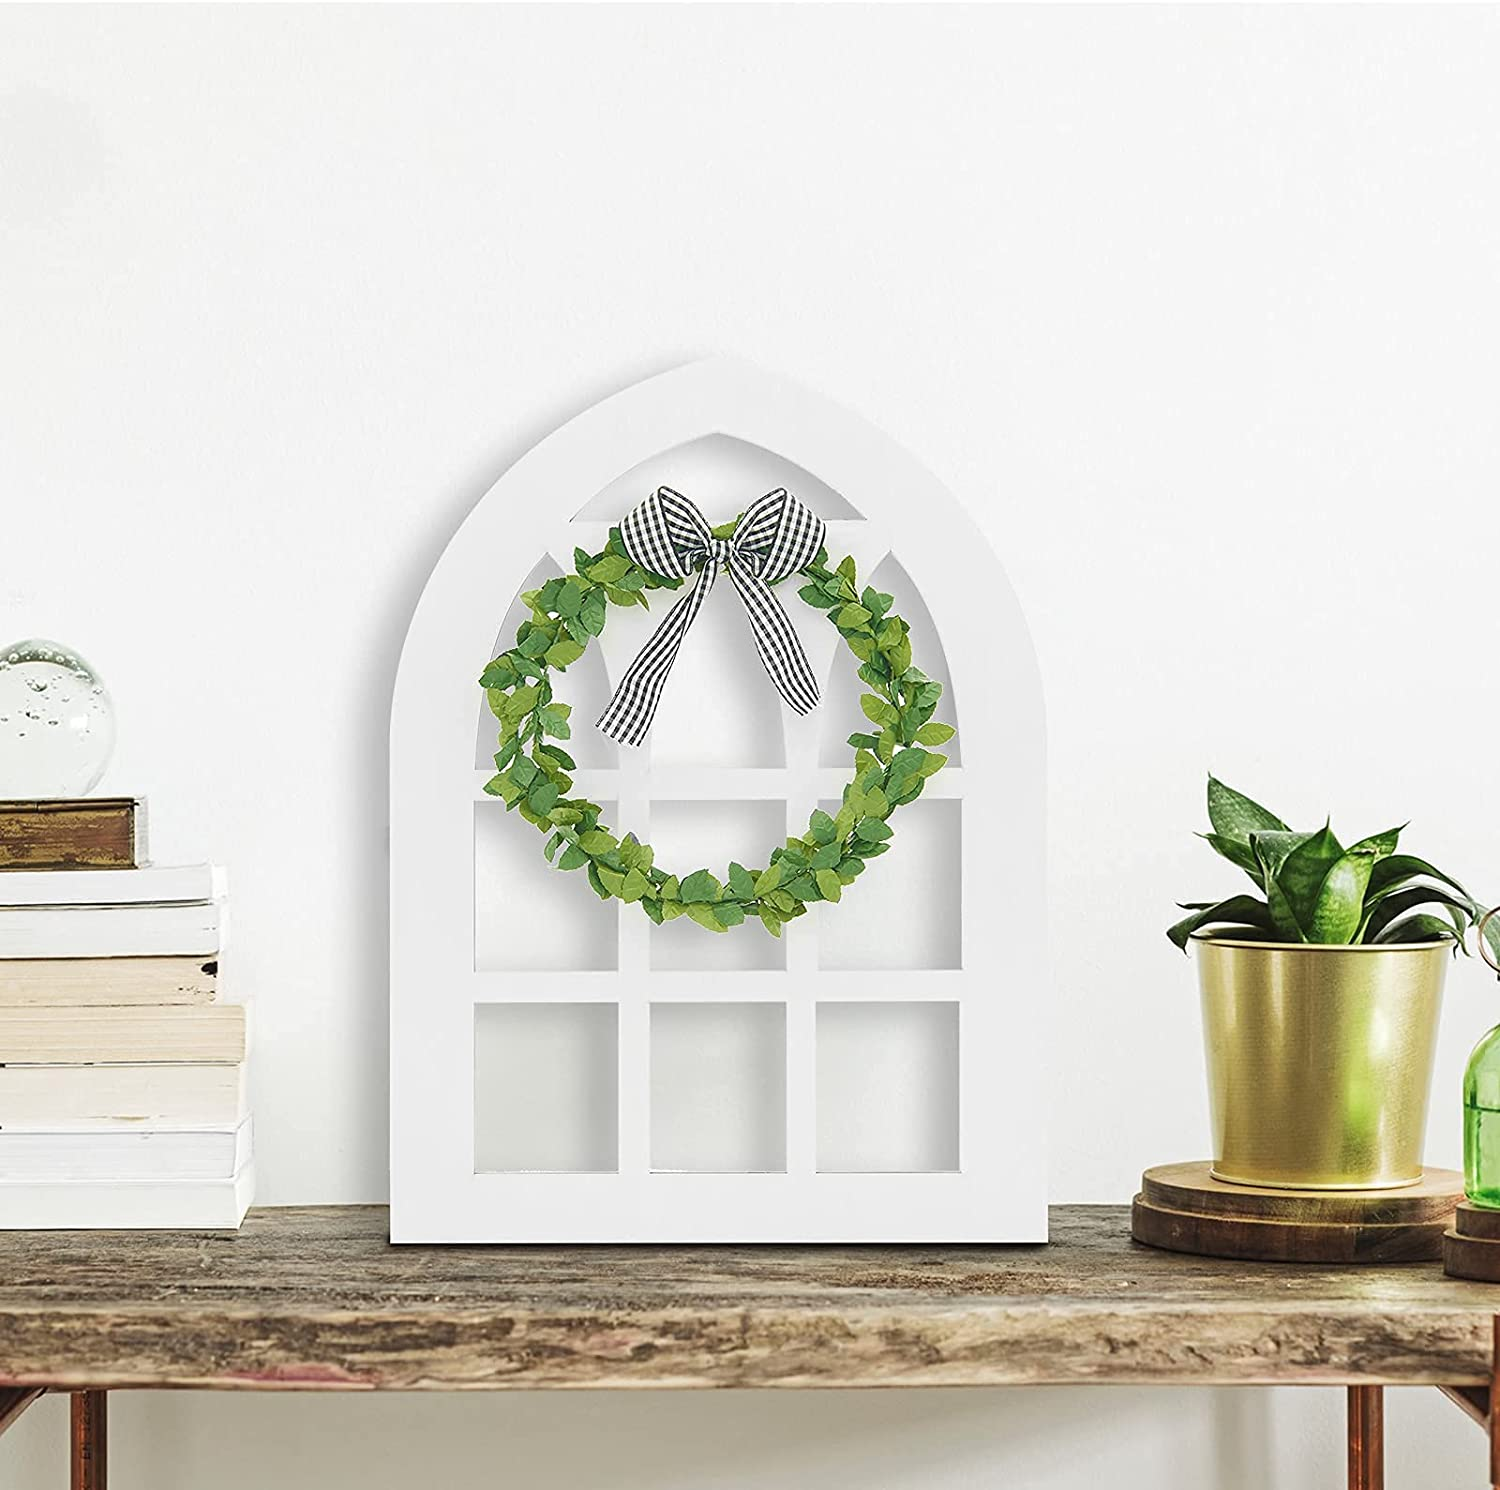 2 Pack Window Frame Wall Decor Wooden Farmhouse Window Tiered Tray Decoration Rustic White Wood Window Pane Country Farmhouse Decorations(11X15.8 inches, Arched)